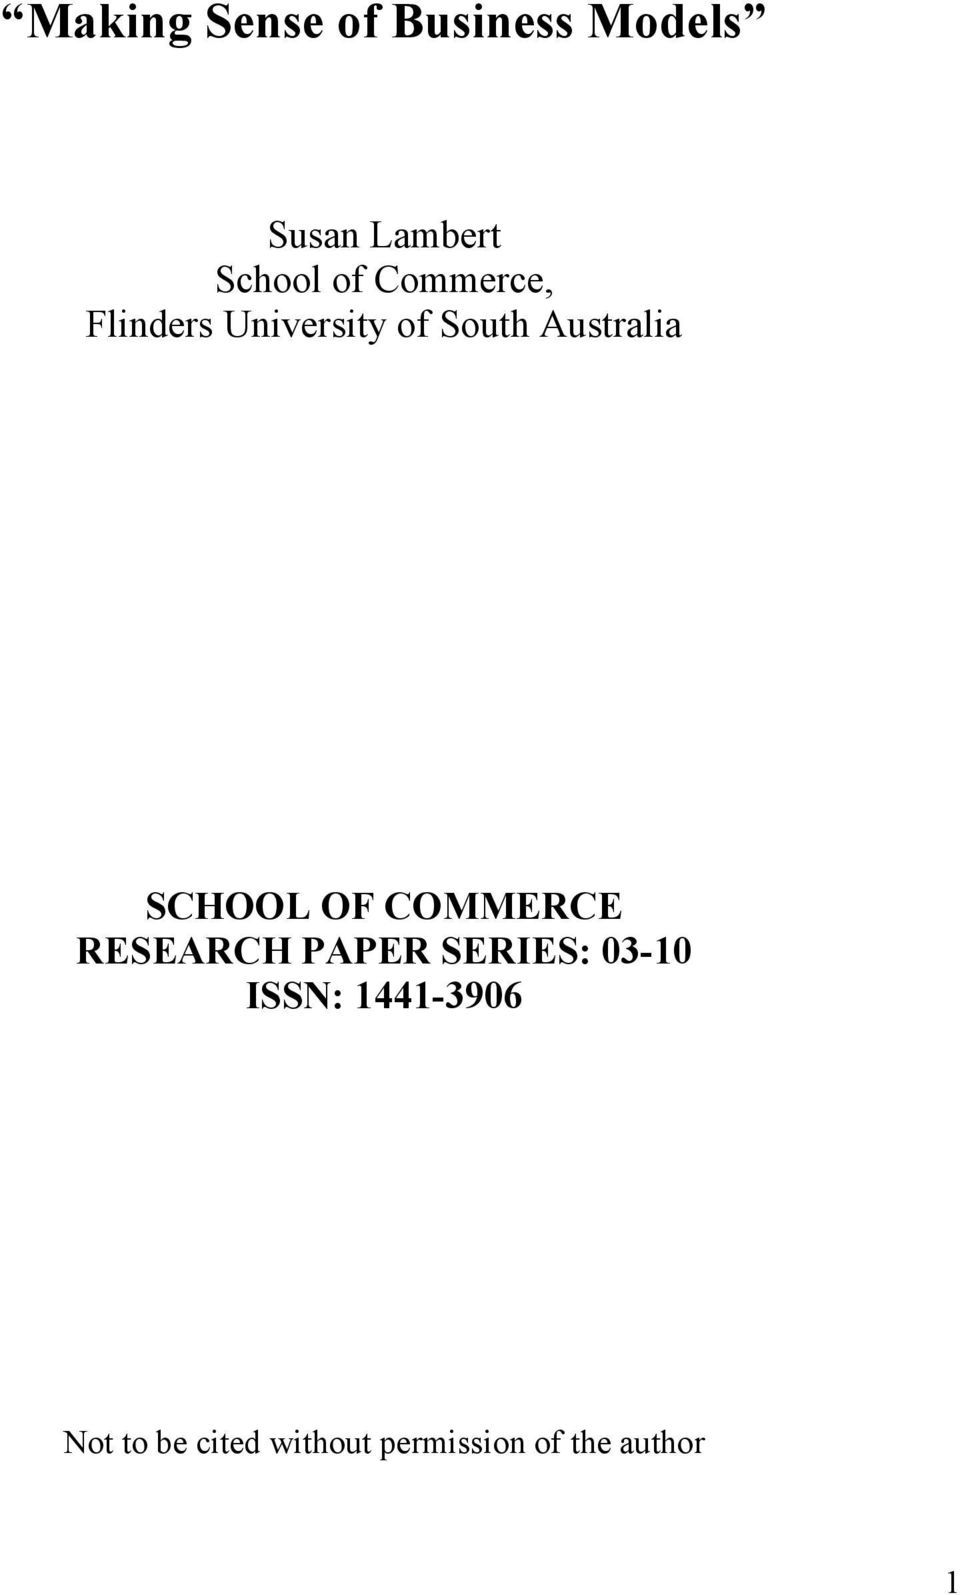 SCHOOL OF COMMERCE RESEARCH PAPER SERIES: 03-10 ISSN: